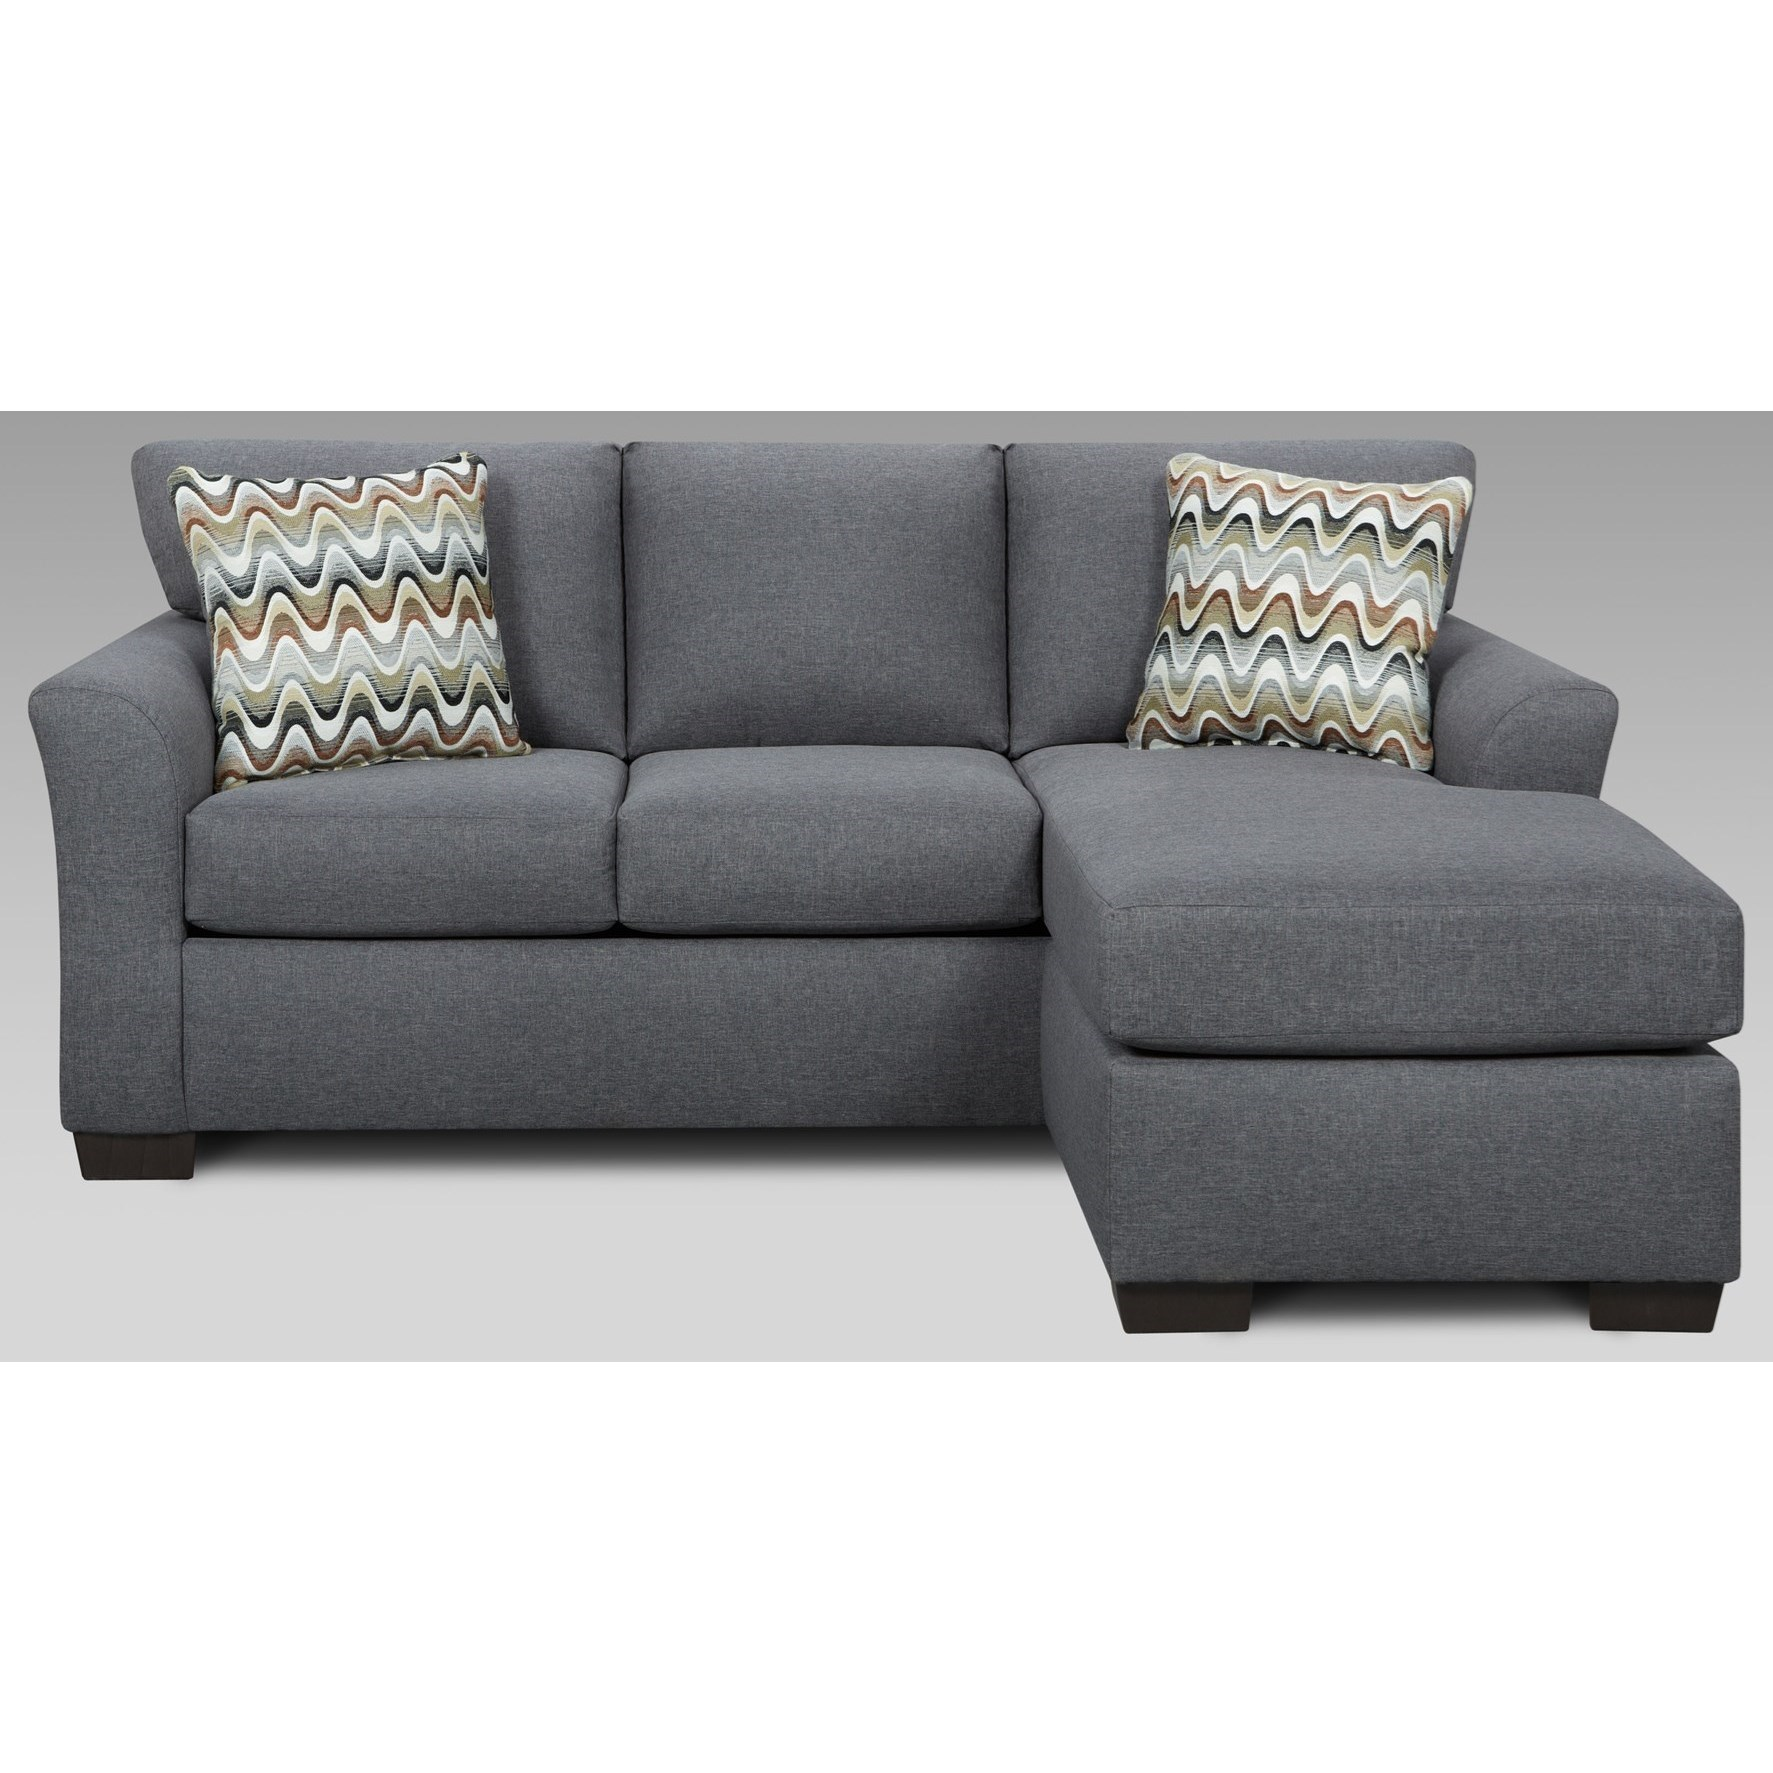 cosmopolitan 3900 transitional sofa with chaise and flared arms by affordable furniture at wilcox furniture